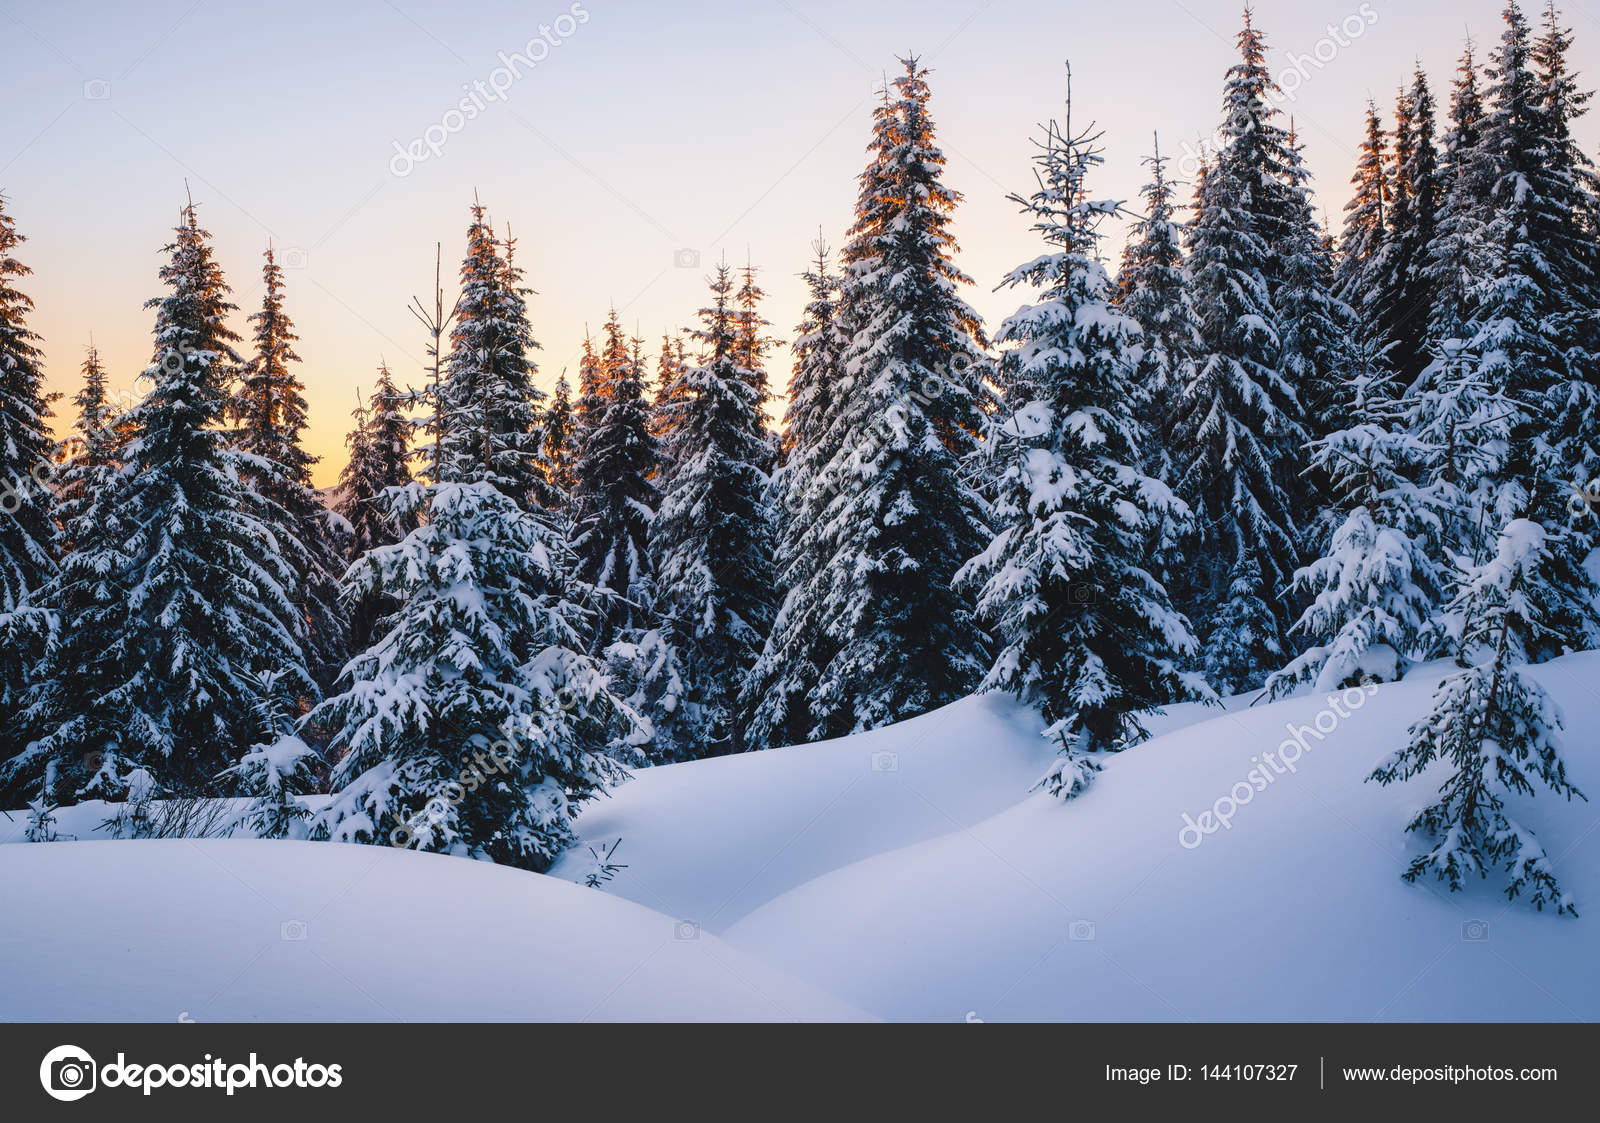 depositphotos_144107327-stock-photo-magic-winter-forest-covered-by.jpg